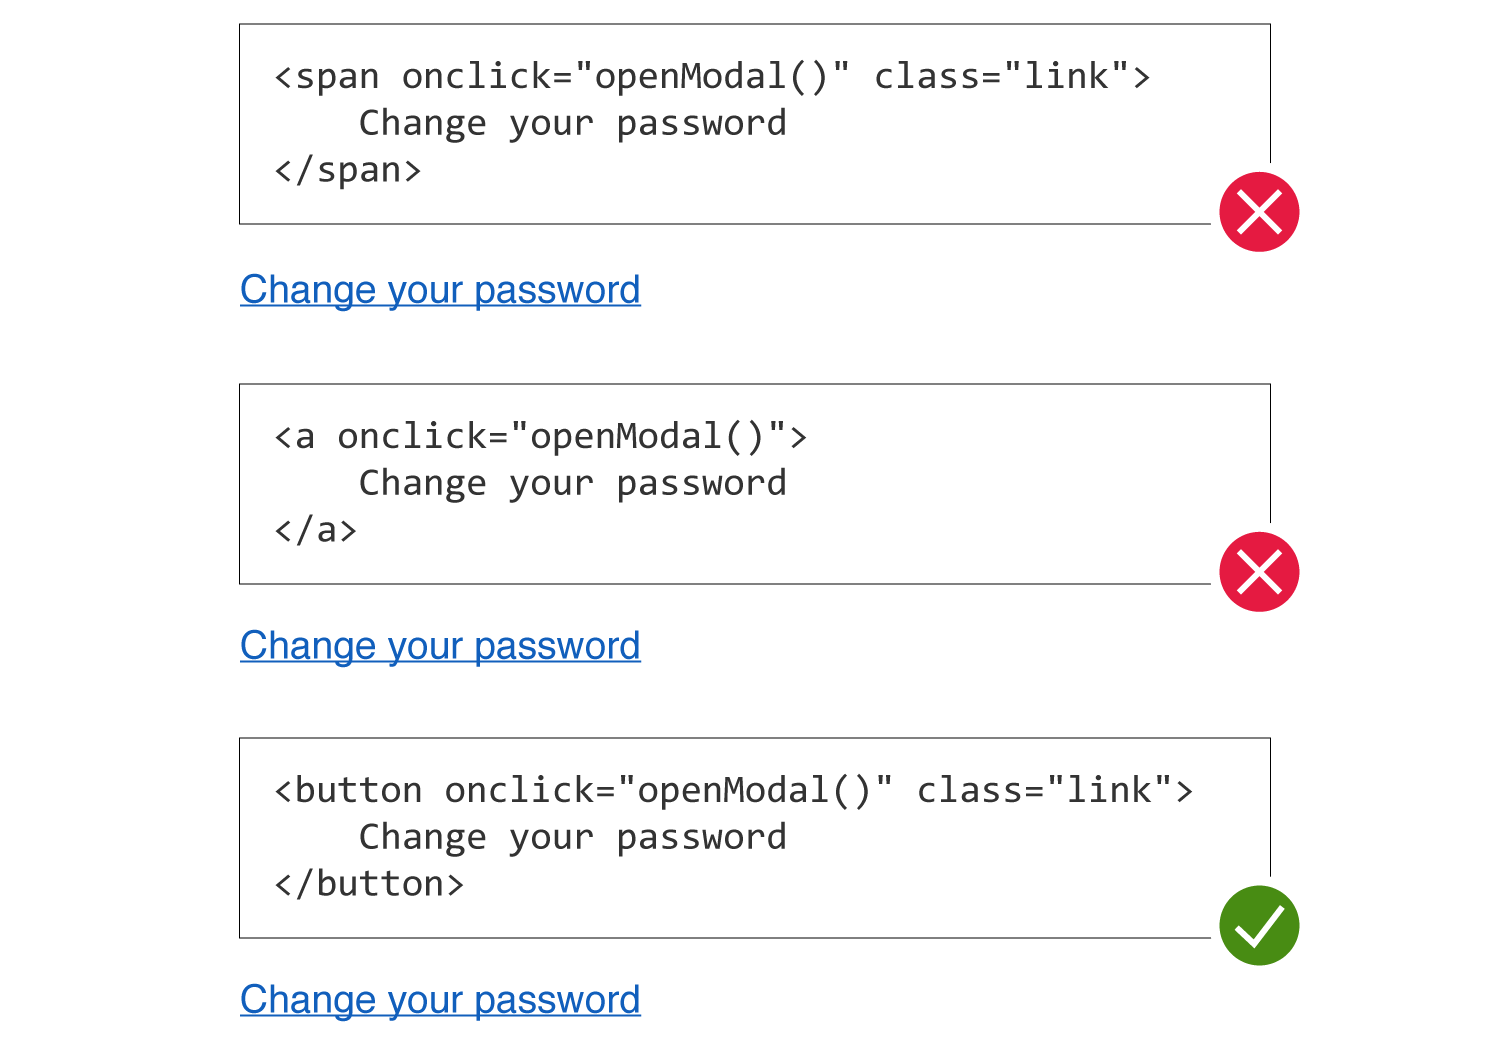 Screenshot of anti-pattern usage of span and anchor tags plus alternative solution of using a button.